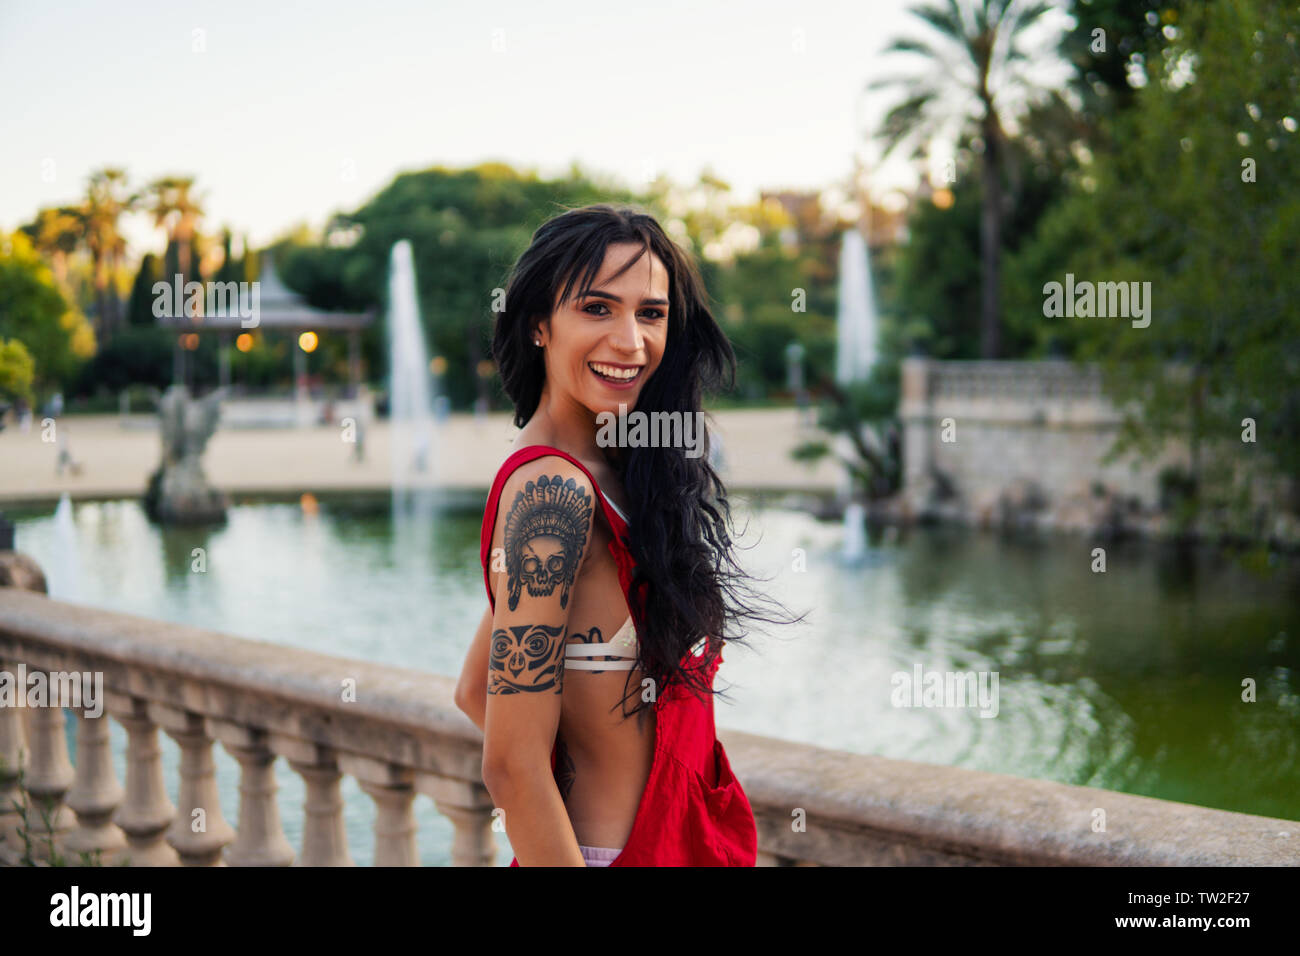 Ladyboy tattooed transgender model is dancing in the green park Stock Photo